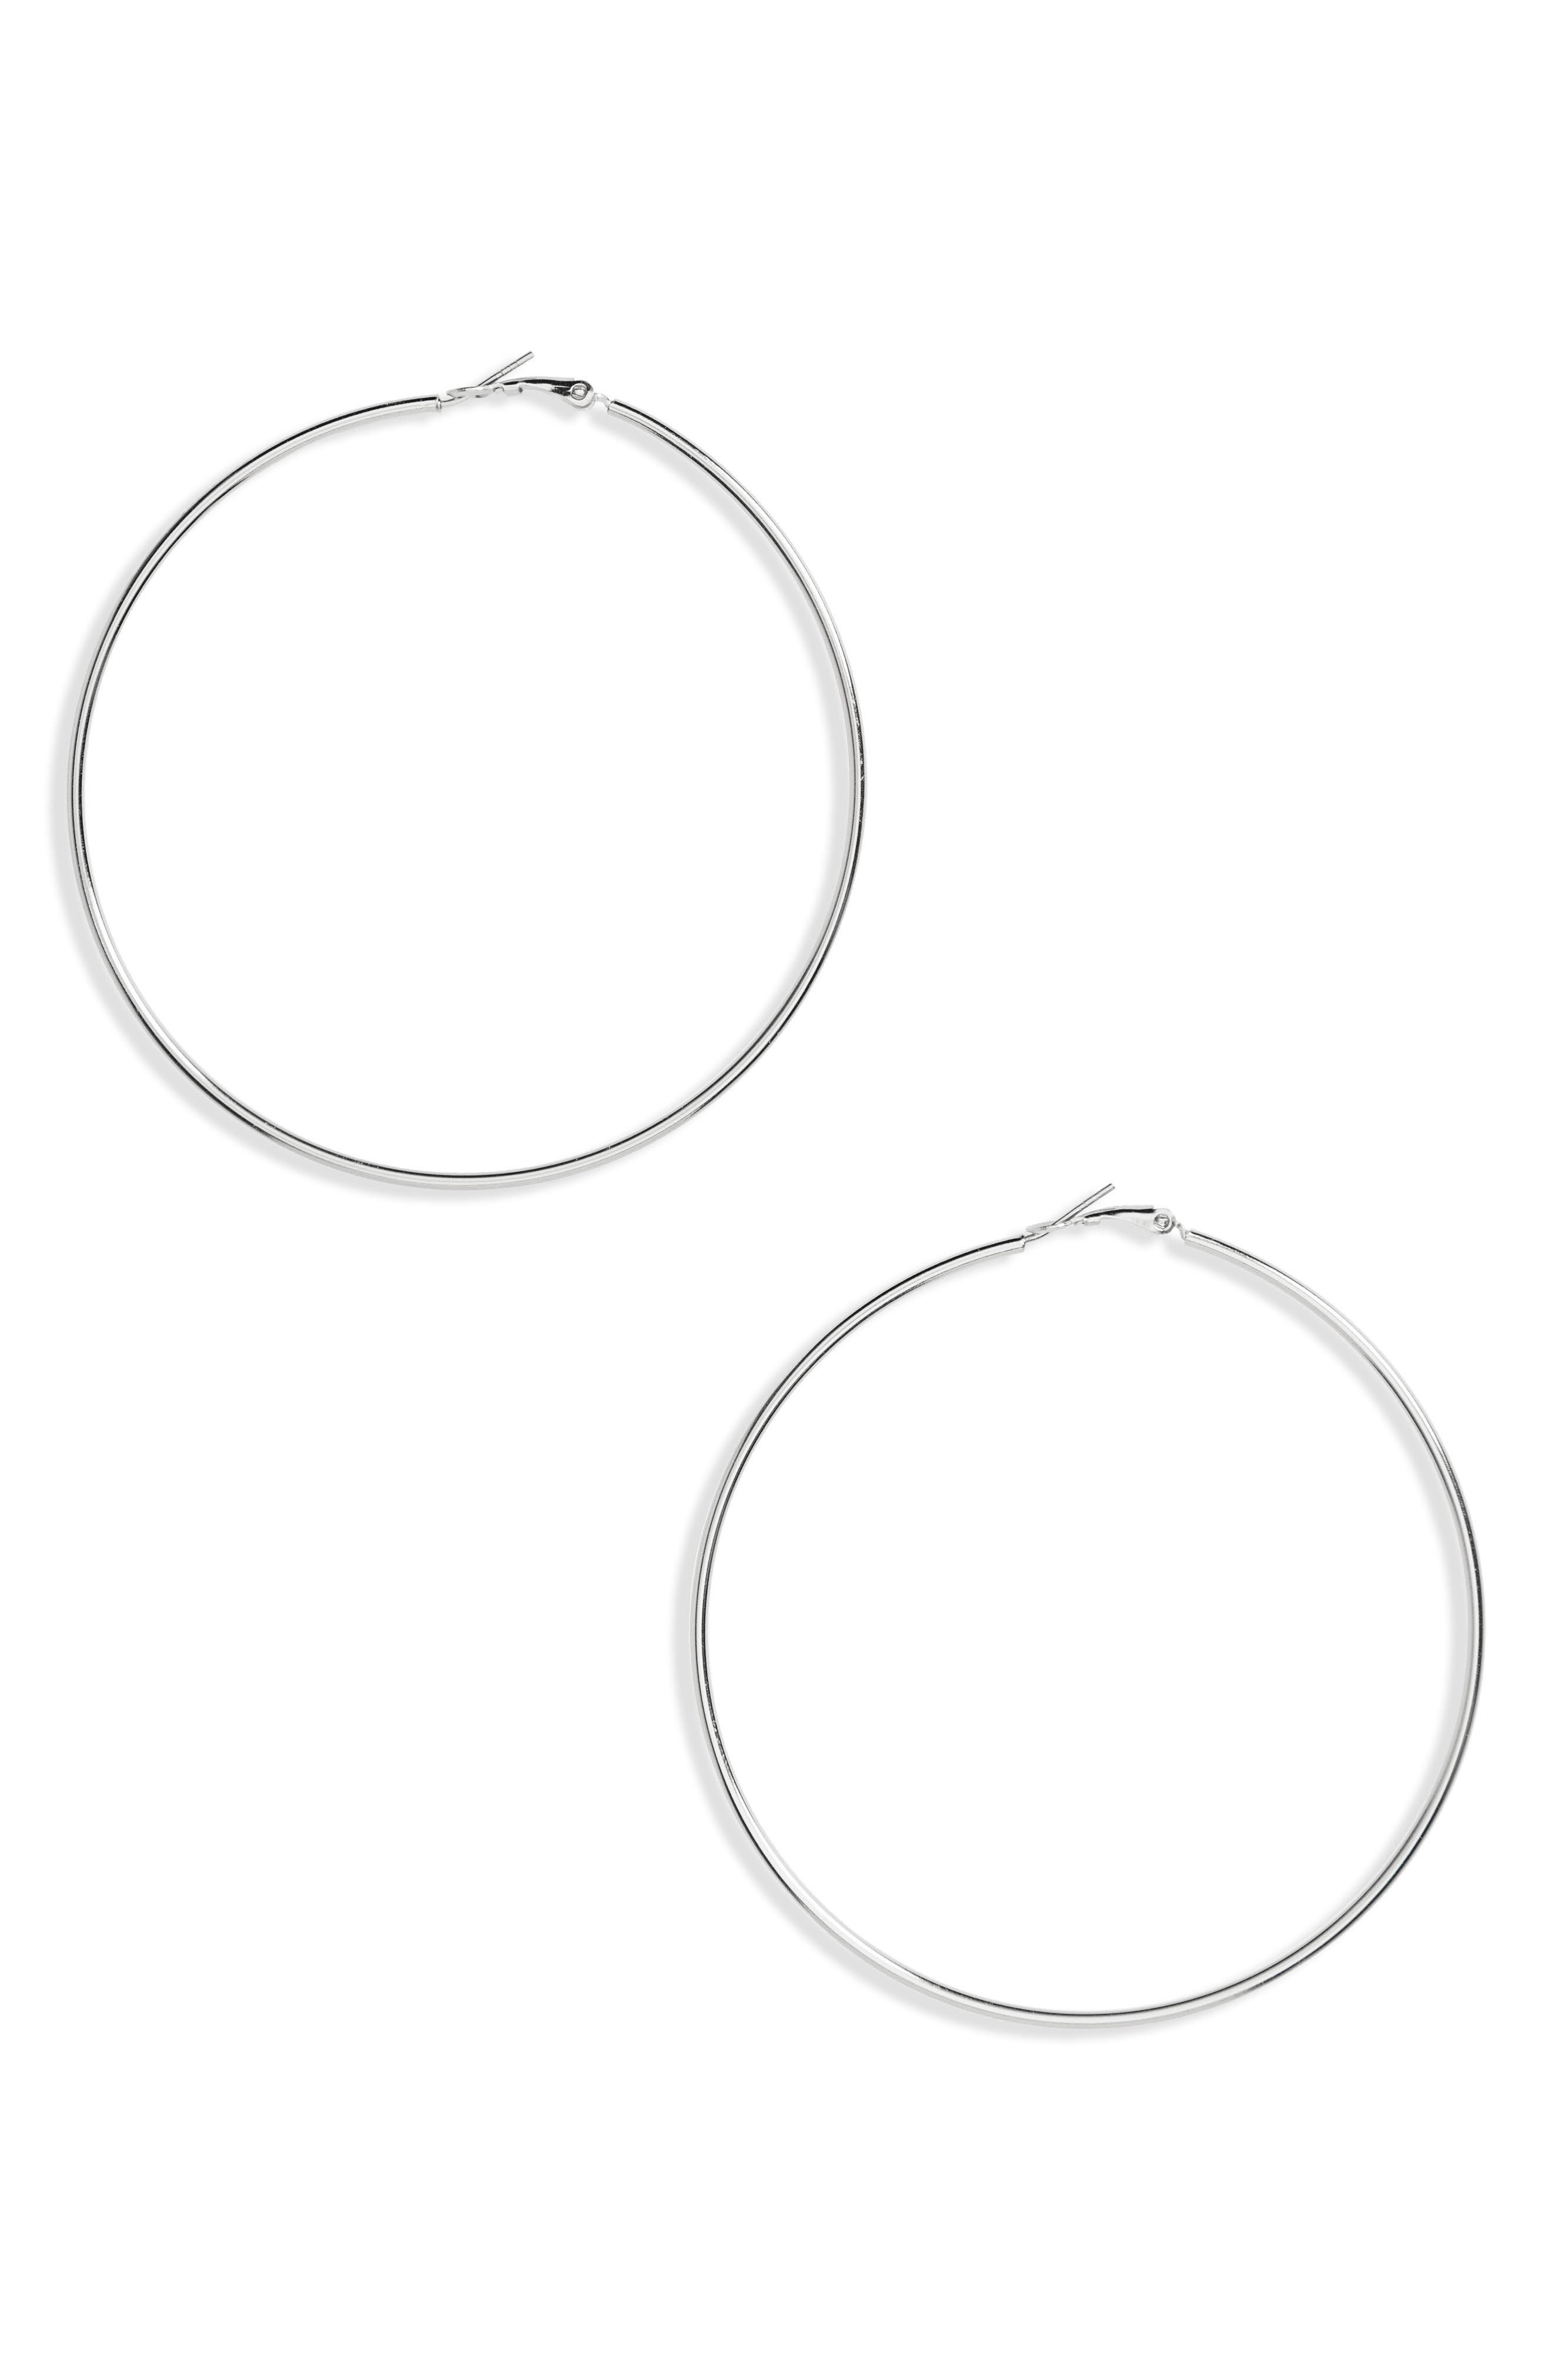 Hoop Earrings,                             Main thumbnail 1, color,